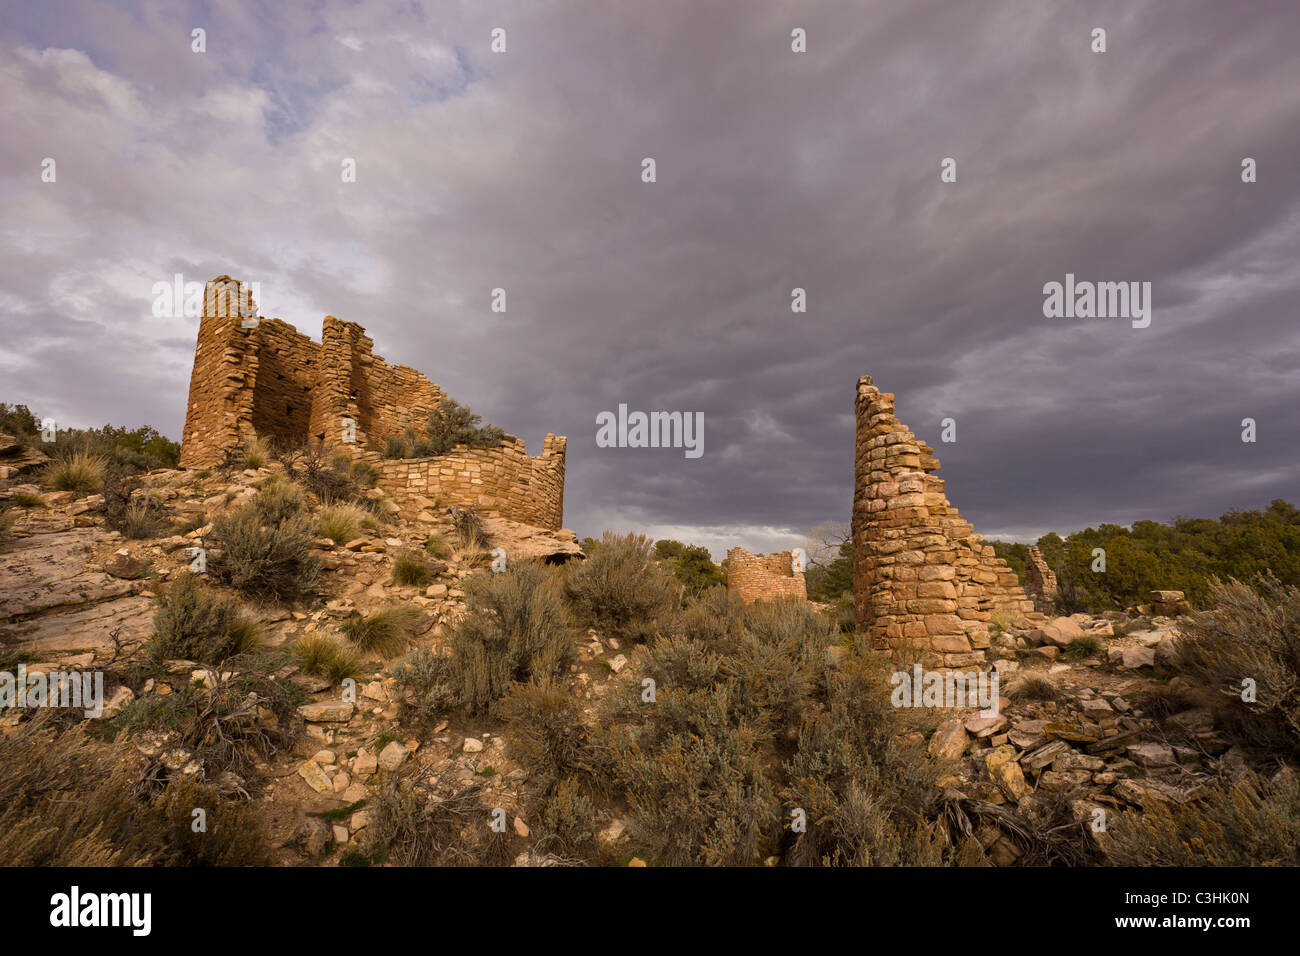 Cutthroat Castle and towers, Cutthroat Group at Hovenweep National Monument in southern Utah, USA. - Stock Image